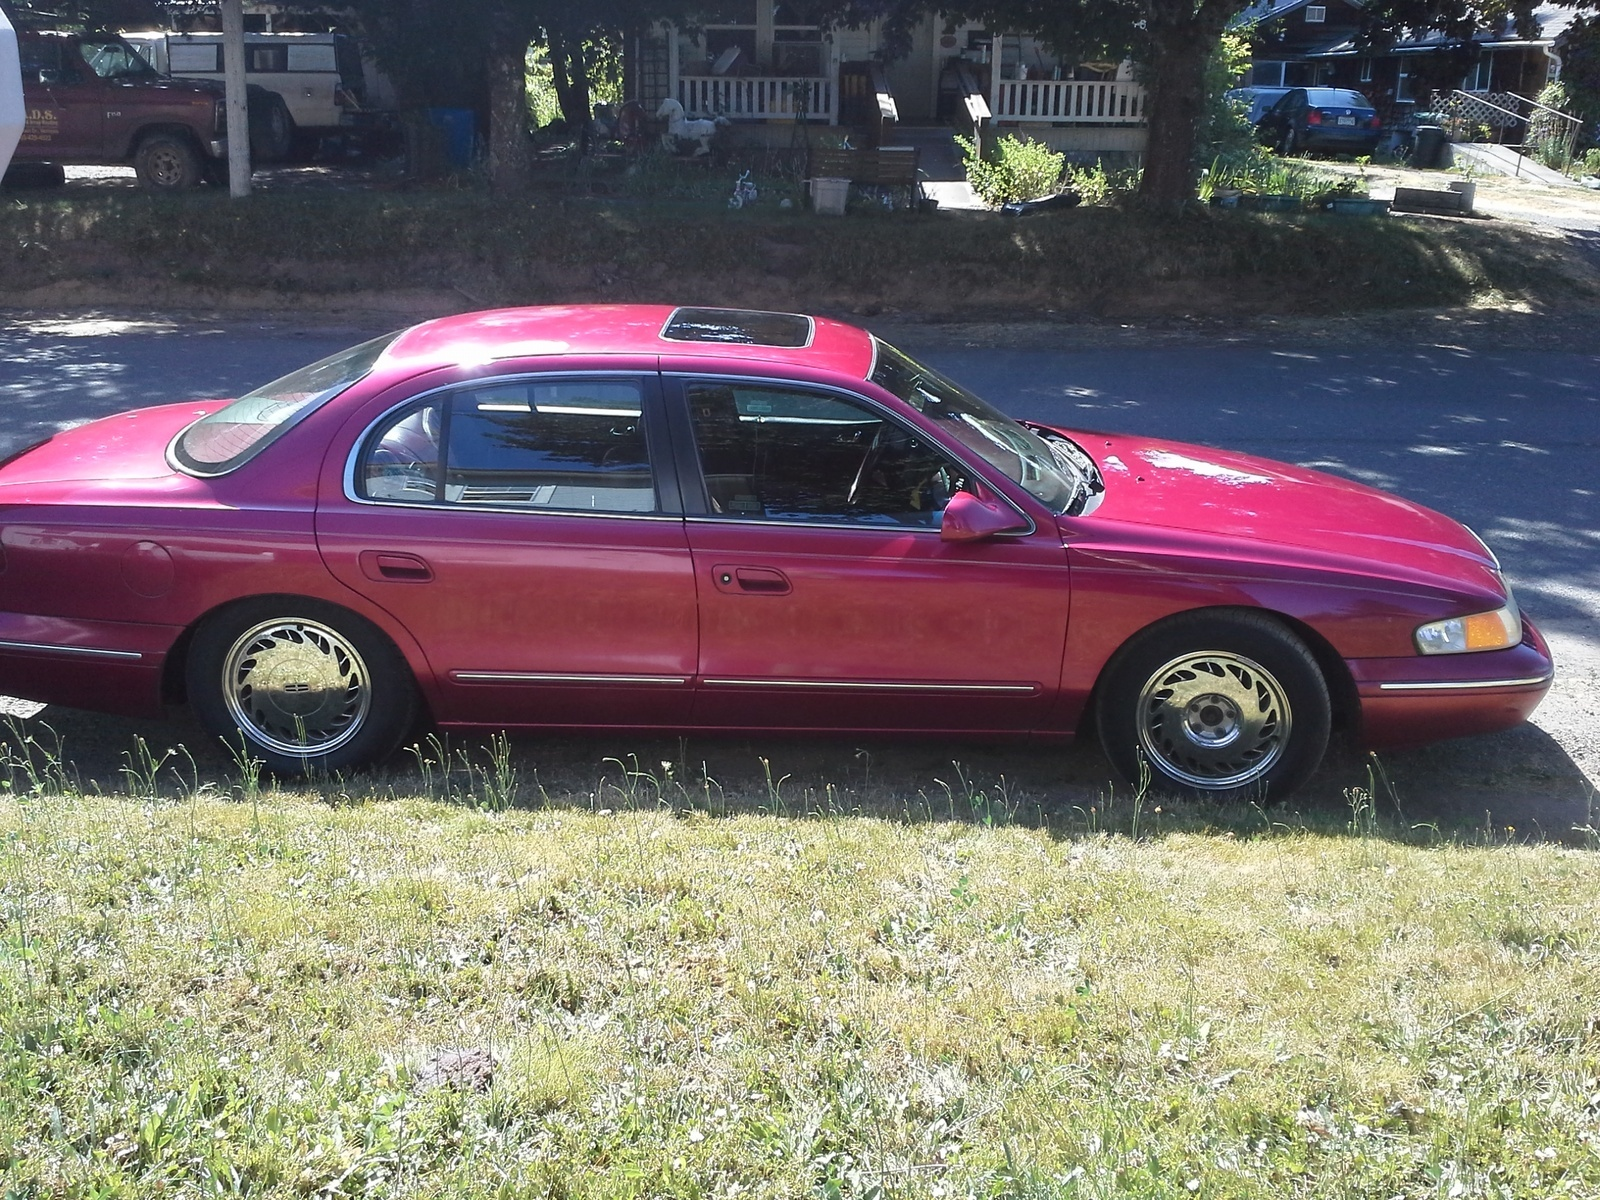 lincoln continental questions trying to fix my 96 lincoln rh cargurus com 1972 Lincoln Continental 1995 Lincoln Continental